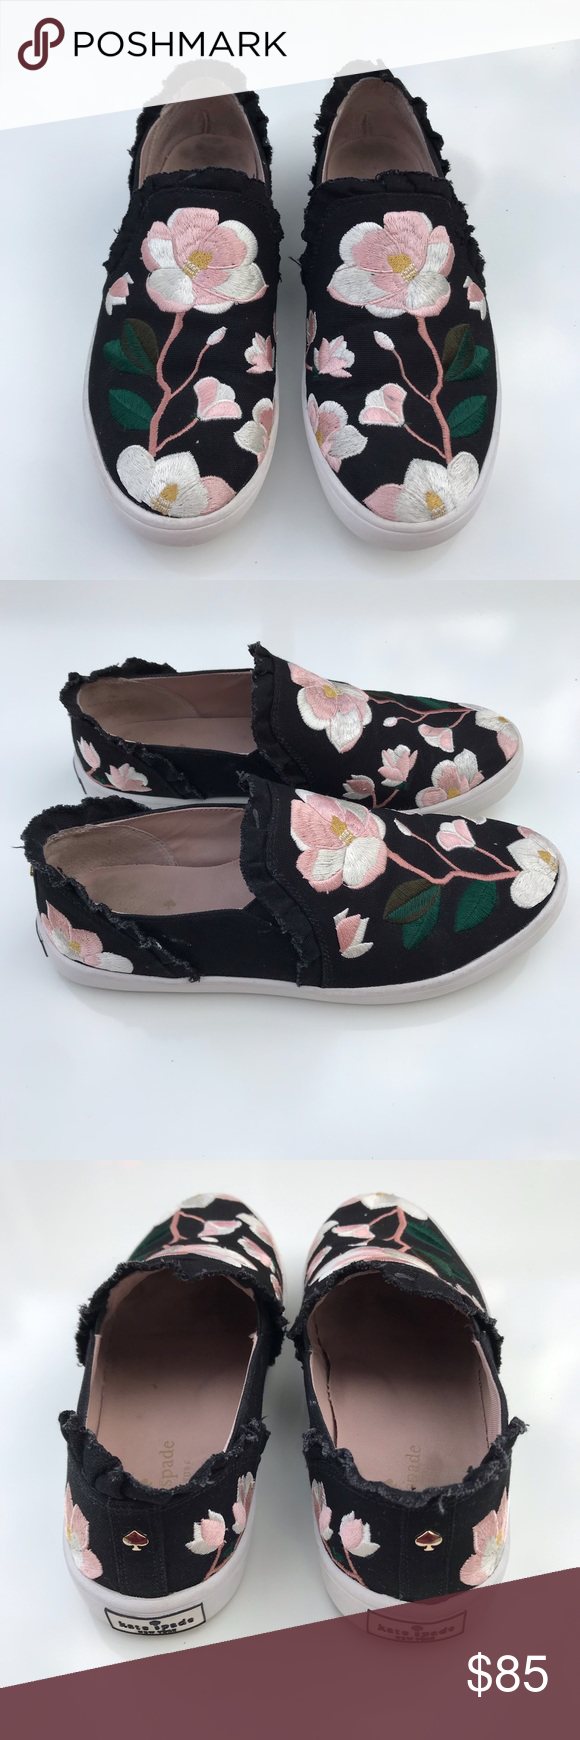 2a04eee7eb46 Kate Spade Leonie Floral Embroidered Linen Sneaker So beautiful! Overall  great condition! No trades! Size 7 kate spade Shoes Sneakers